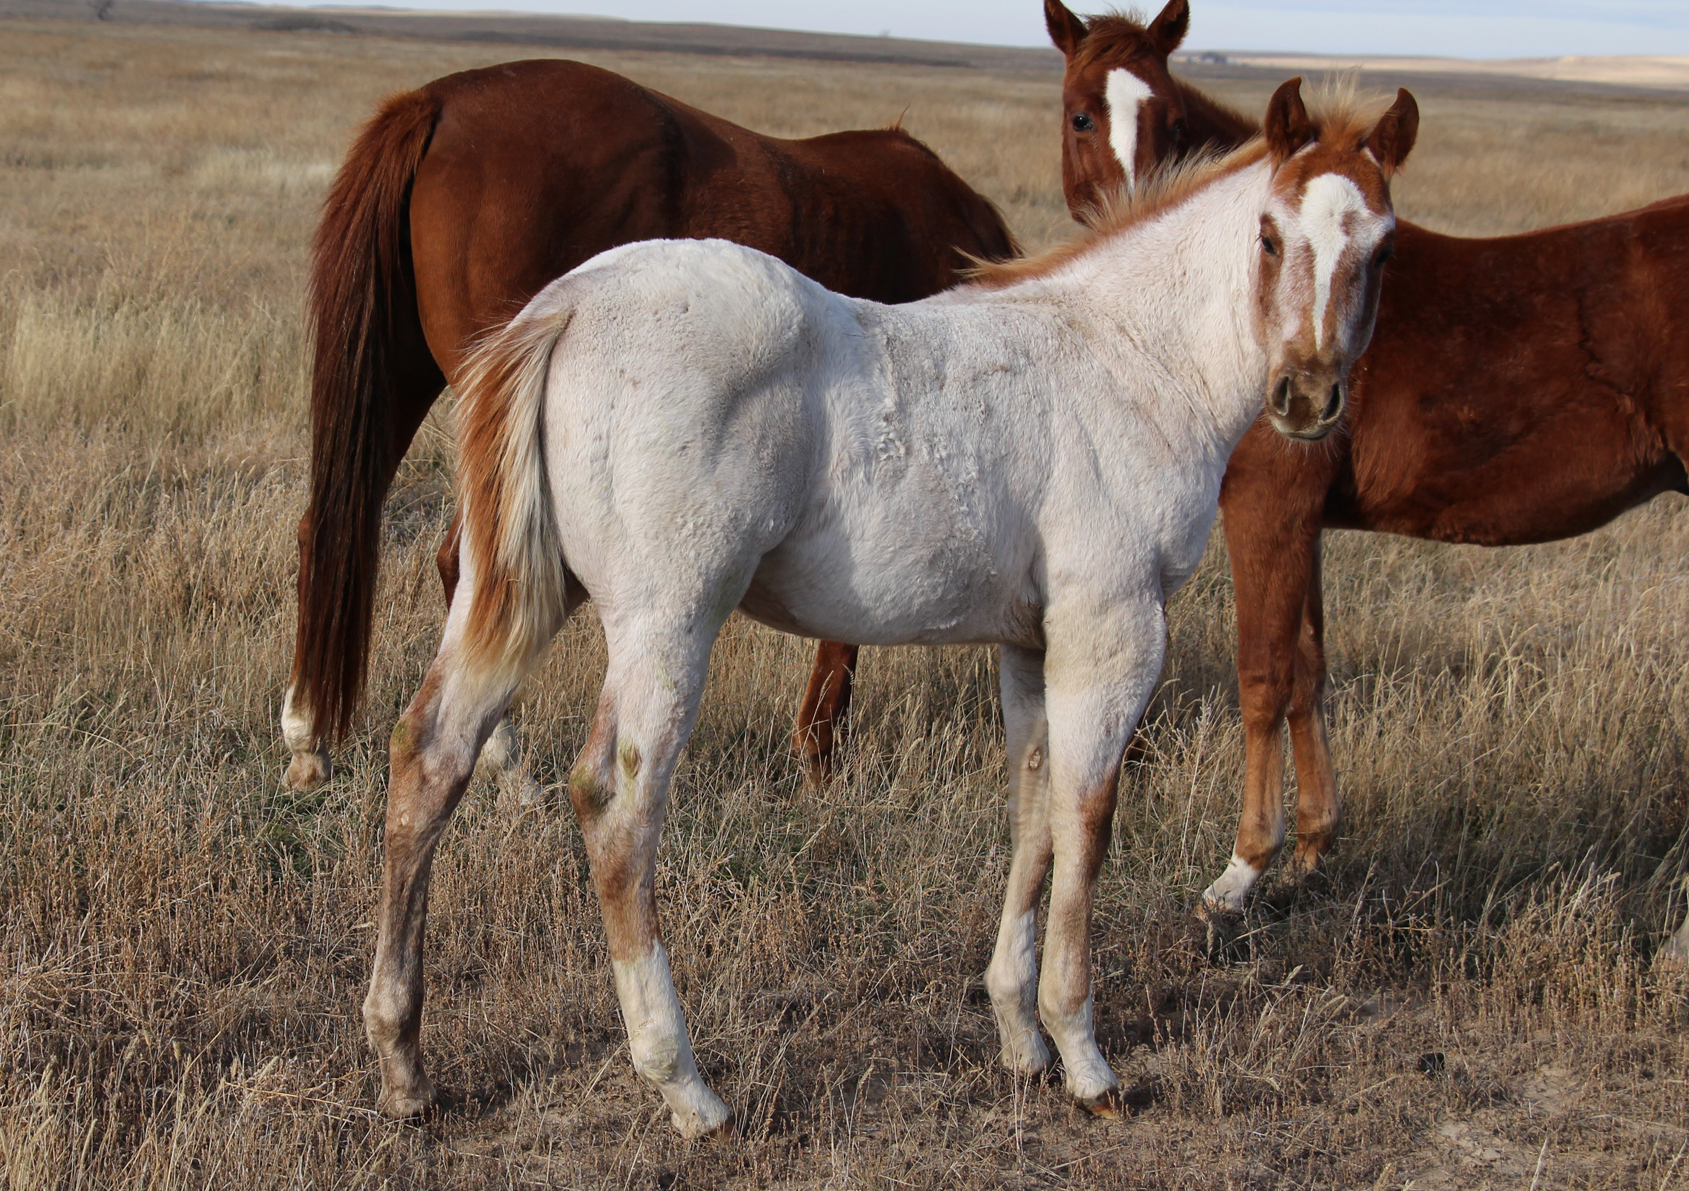 July 2017 red roan stallion sired by Bettin Yer Smart. Dam is Spark Plug Cat (Shining Spark daughter).